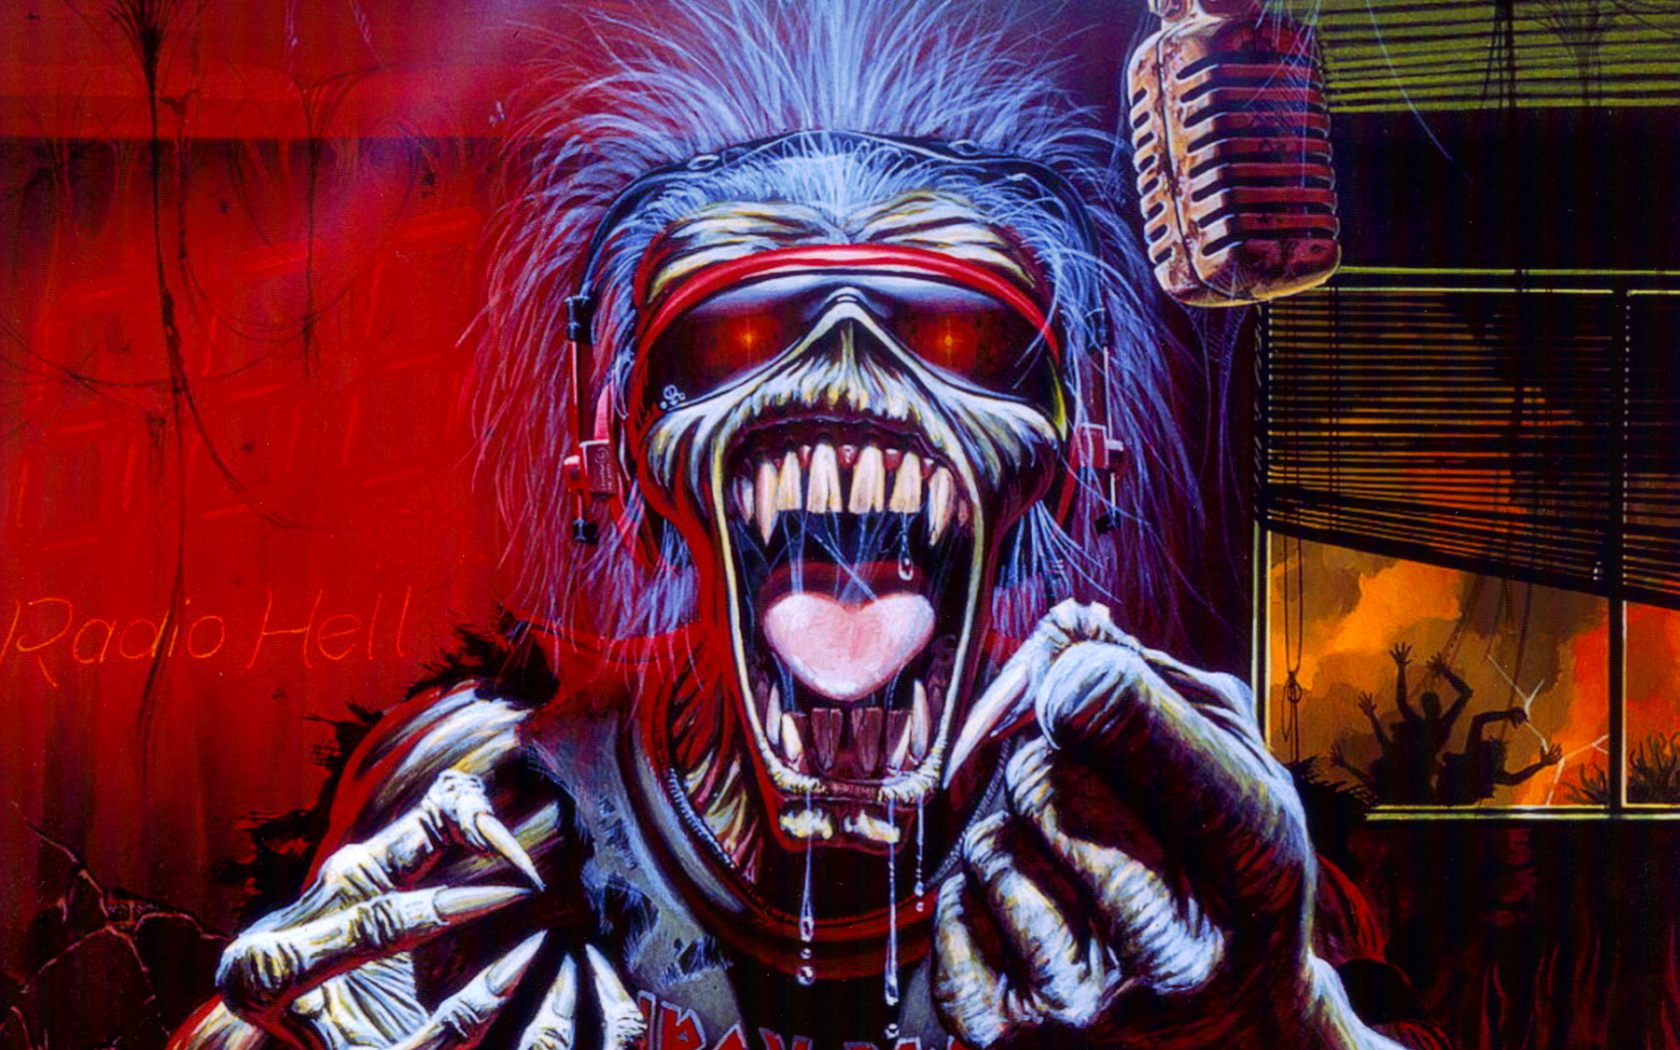 iron maiden wallpapers covers - photo #12